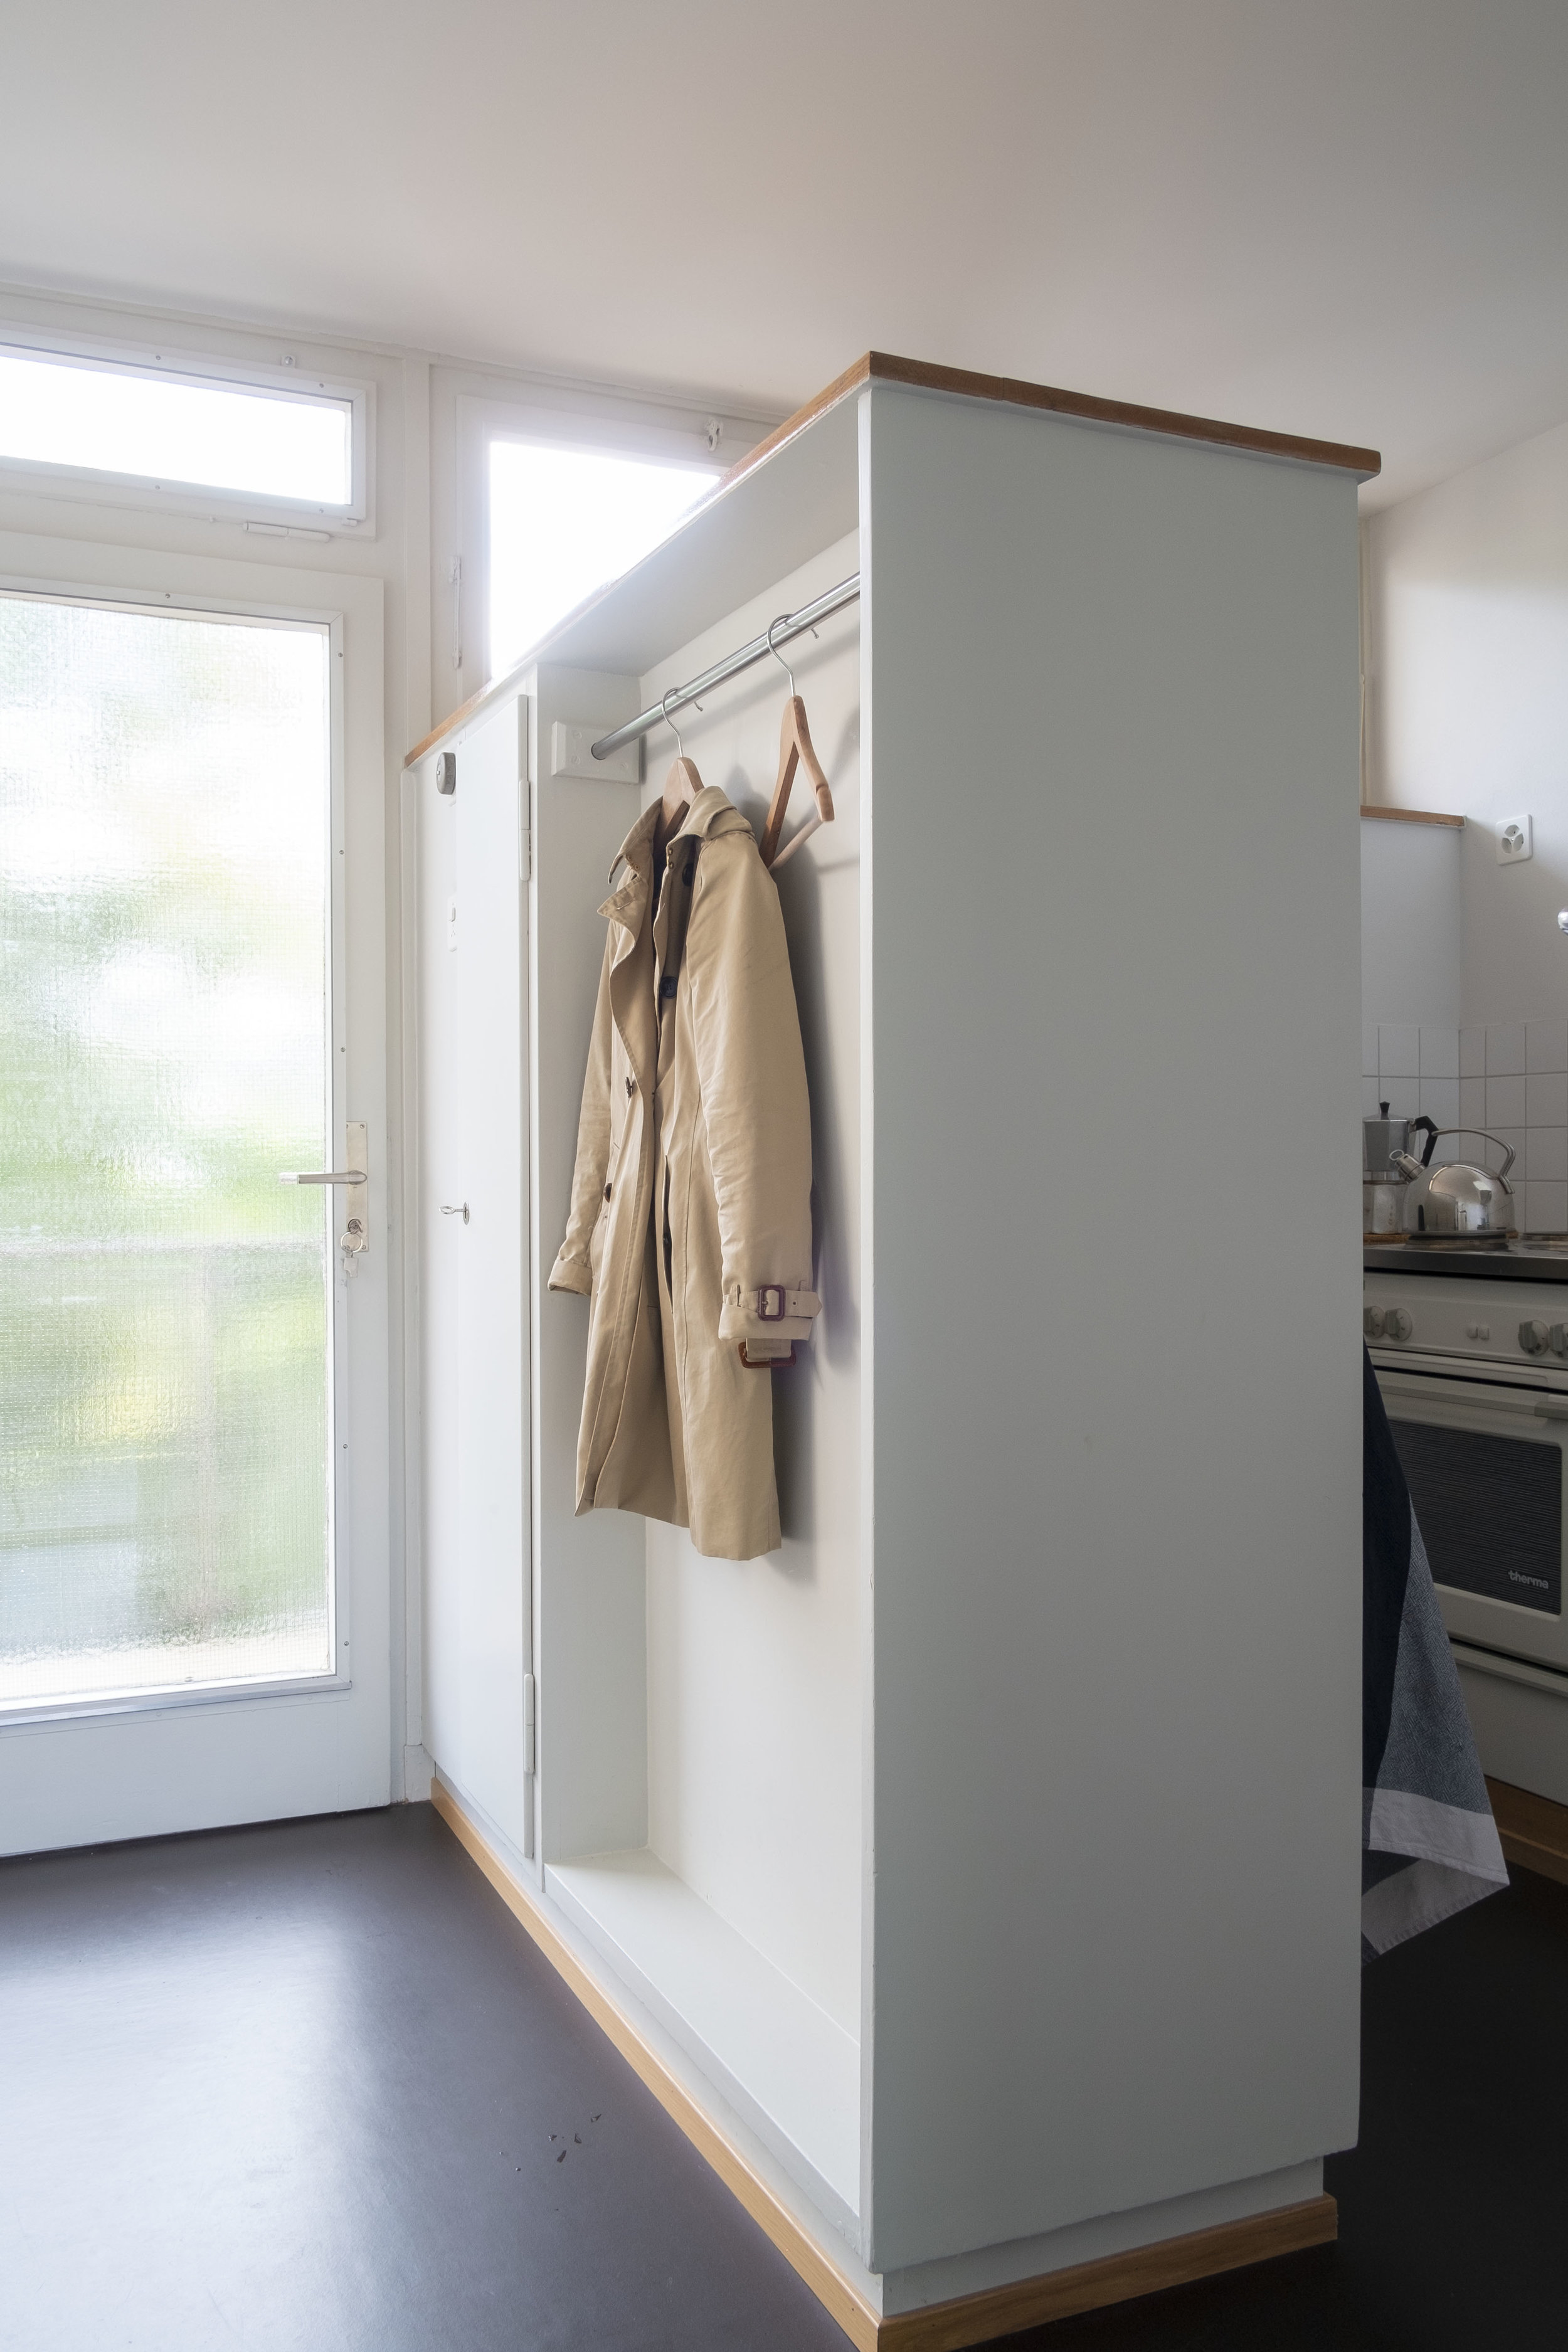 Divider between hall and kitchen